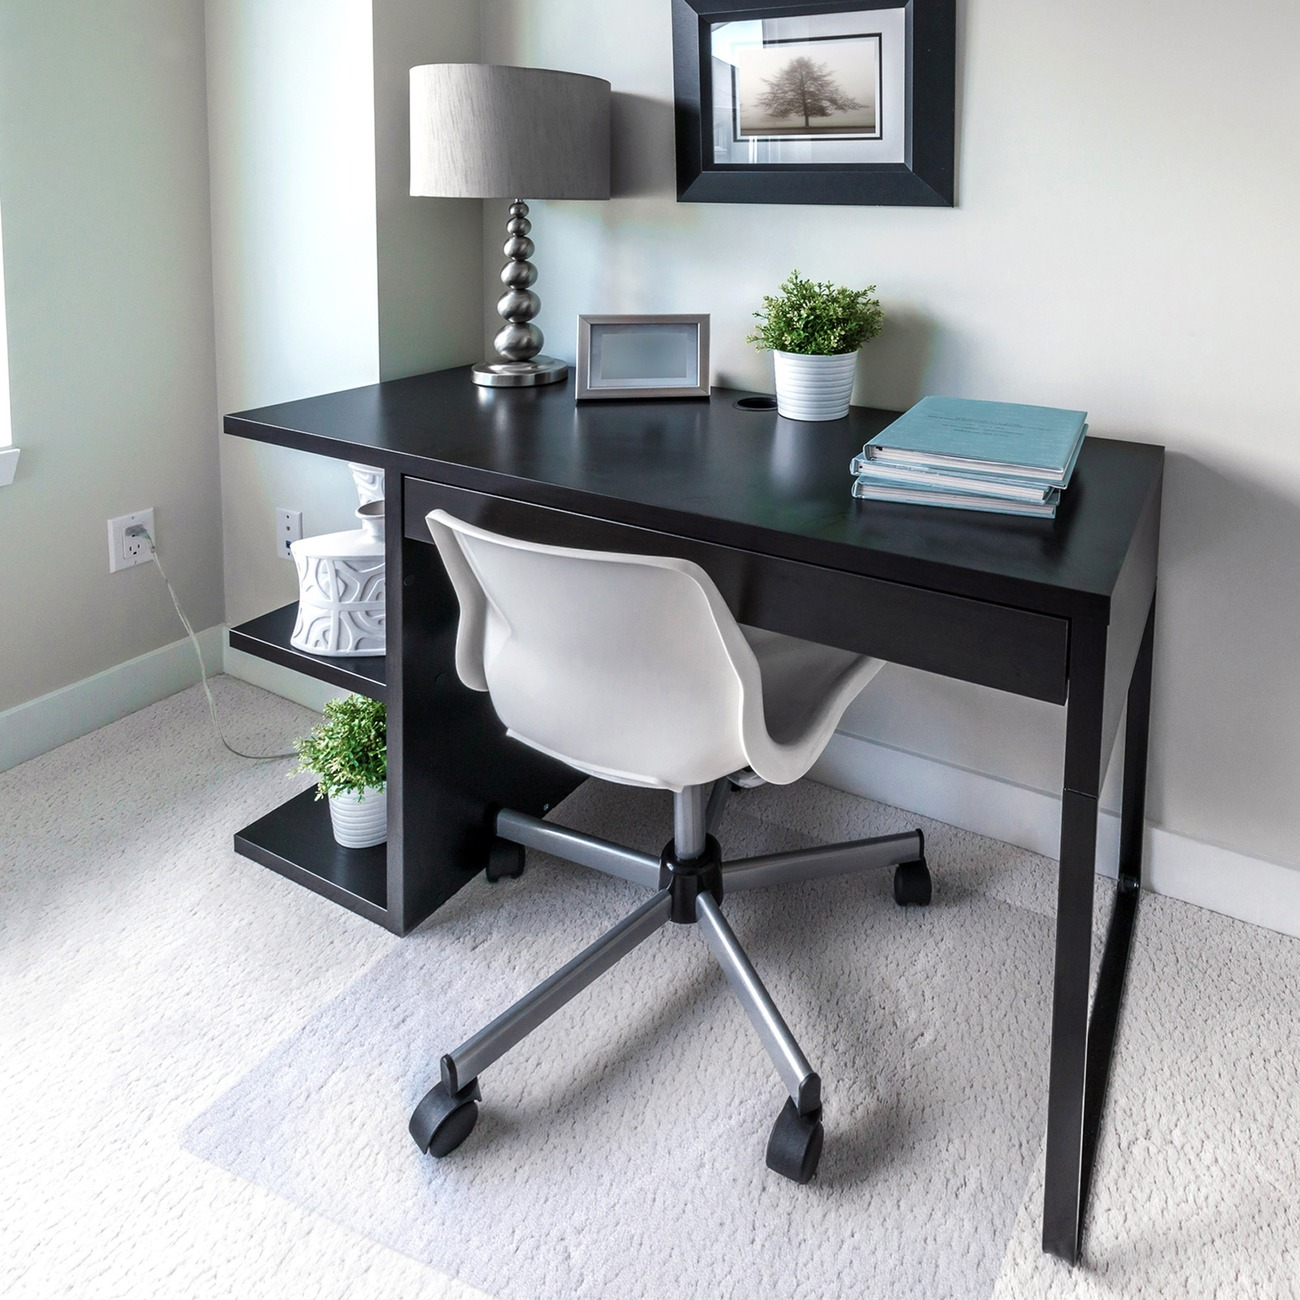 pvc home office chair floor. It Has Twice The Impact Strength Of PVC To Provide A Highly Rigid, Ergonomic, Easy-glide Surface. Pvc Home Office Chair Floor